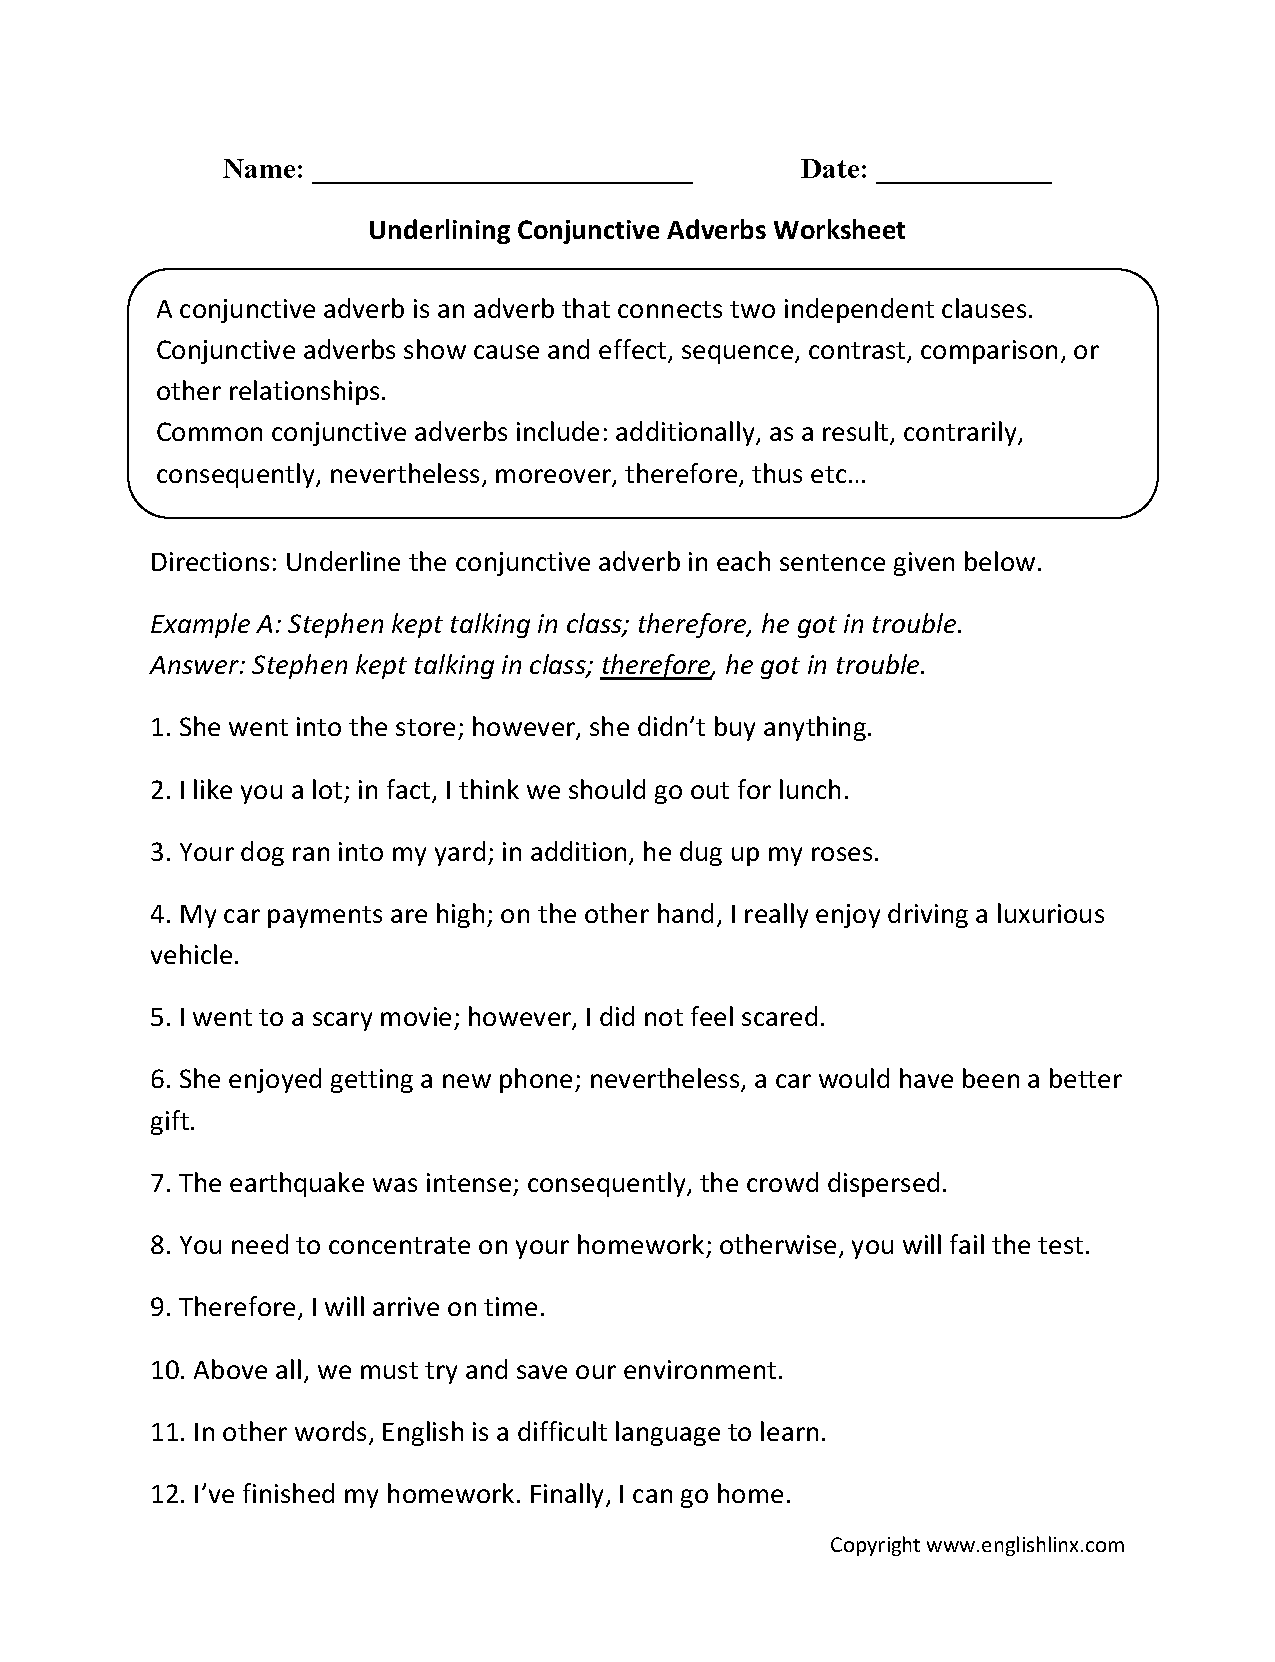 Weirdmailus  Scenic Englishlinxcom  Conjunctions Worksheets With Licious Worksheet With Astonishing Igneous Rocks Worksheet Answers Also Free Cursive Worksheets In Addition Cut And Paste Worksheets And Math Worksheets For St Grade As Well As Mixed Mole Problems Worksheet Additionally Dilations Worksheet With Answers From Englishlinxcom With Weirdmailus  Licious Englishlinxcom  Conjunctions Worksheets With Astonishing Worksheet And Scenic Igneous Rocks Worksheet Answers Also Free Cursive Worksheets In Addition Cut And Paste Worksheets From Englishlinxcom